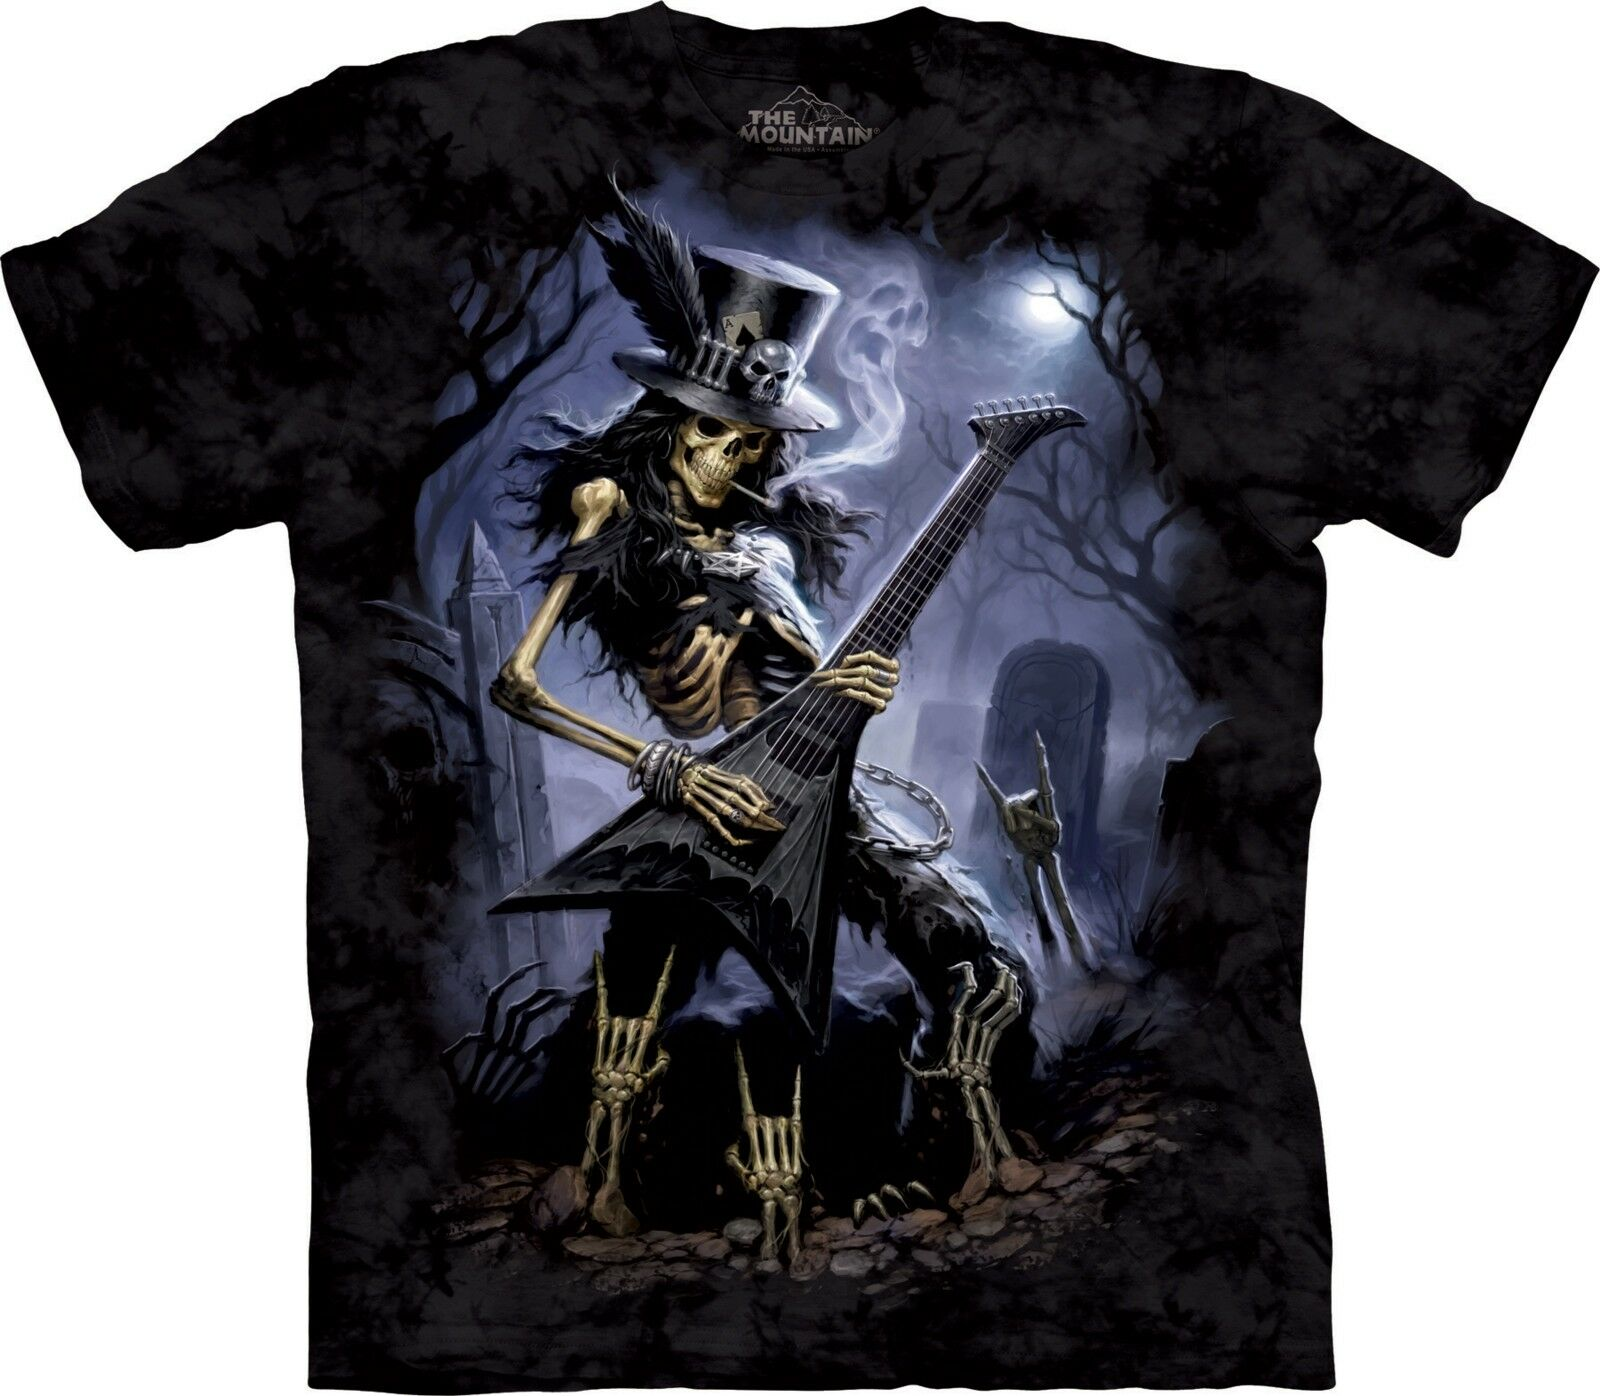 Play Dead Fantasy T Shirt Adult Unisex The Mountain Skulbone